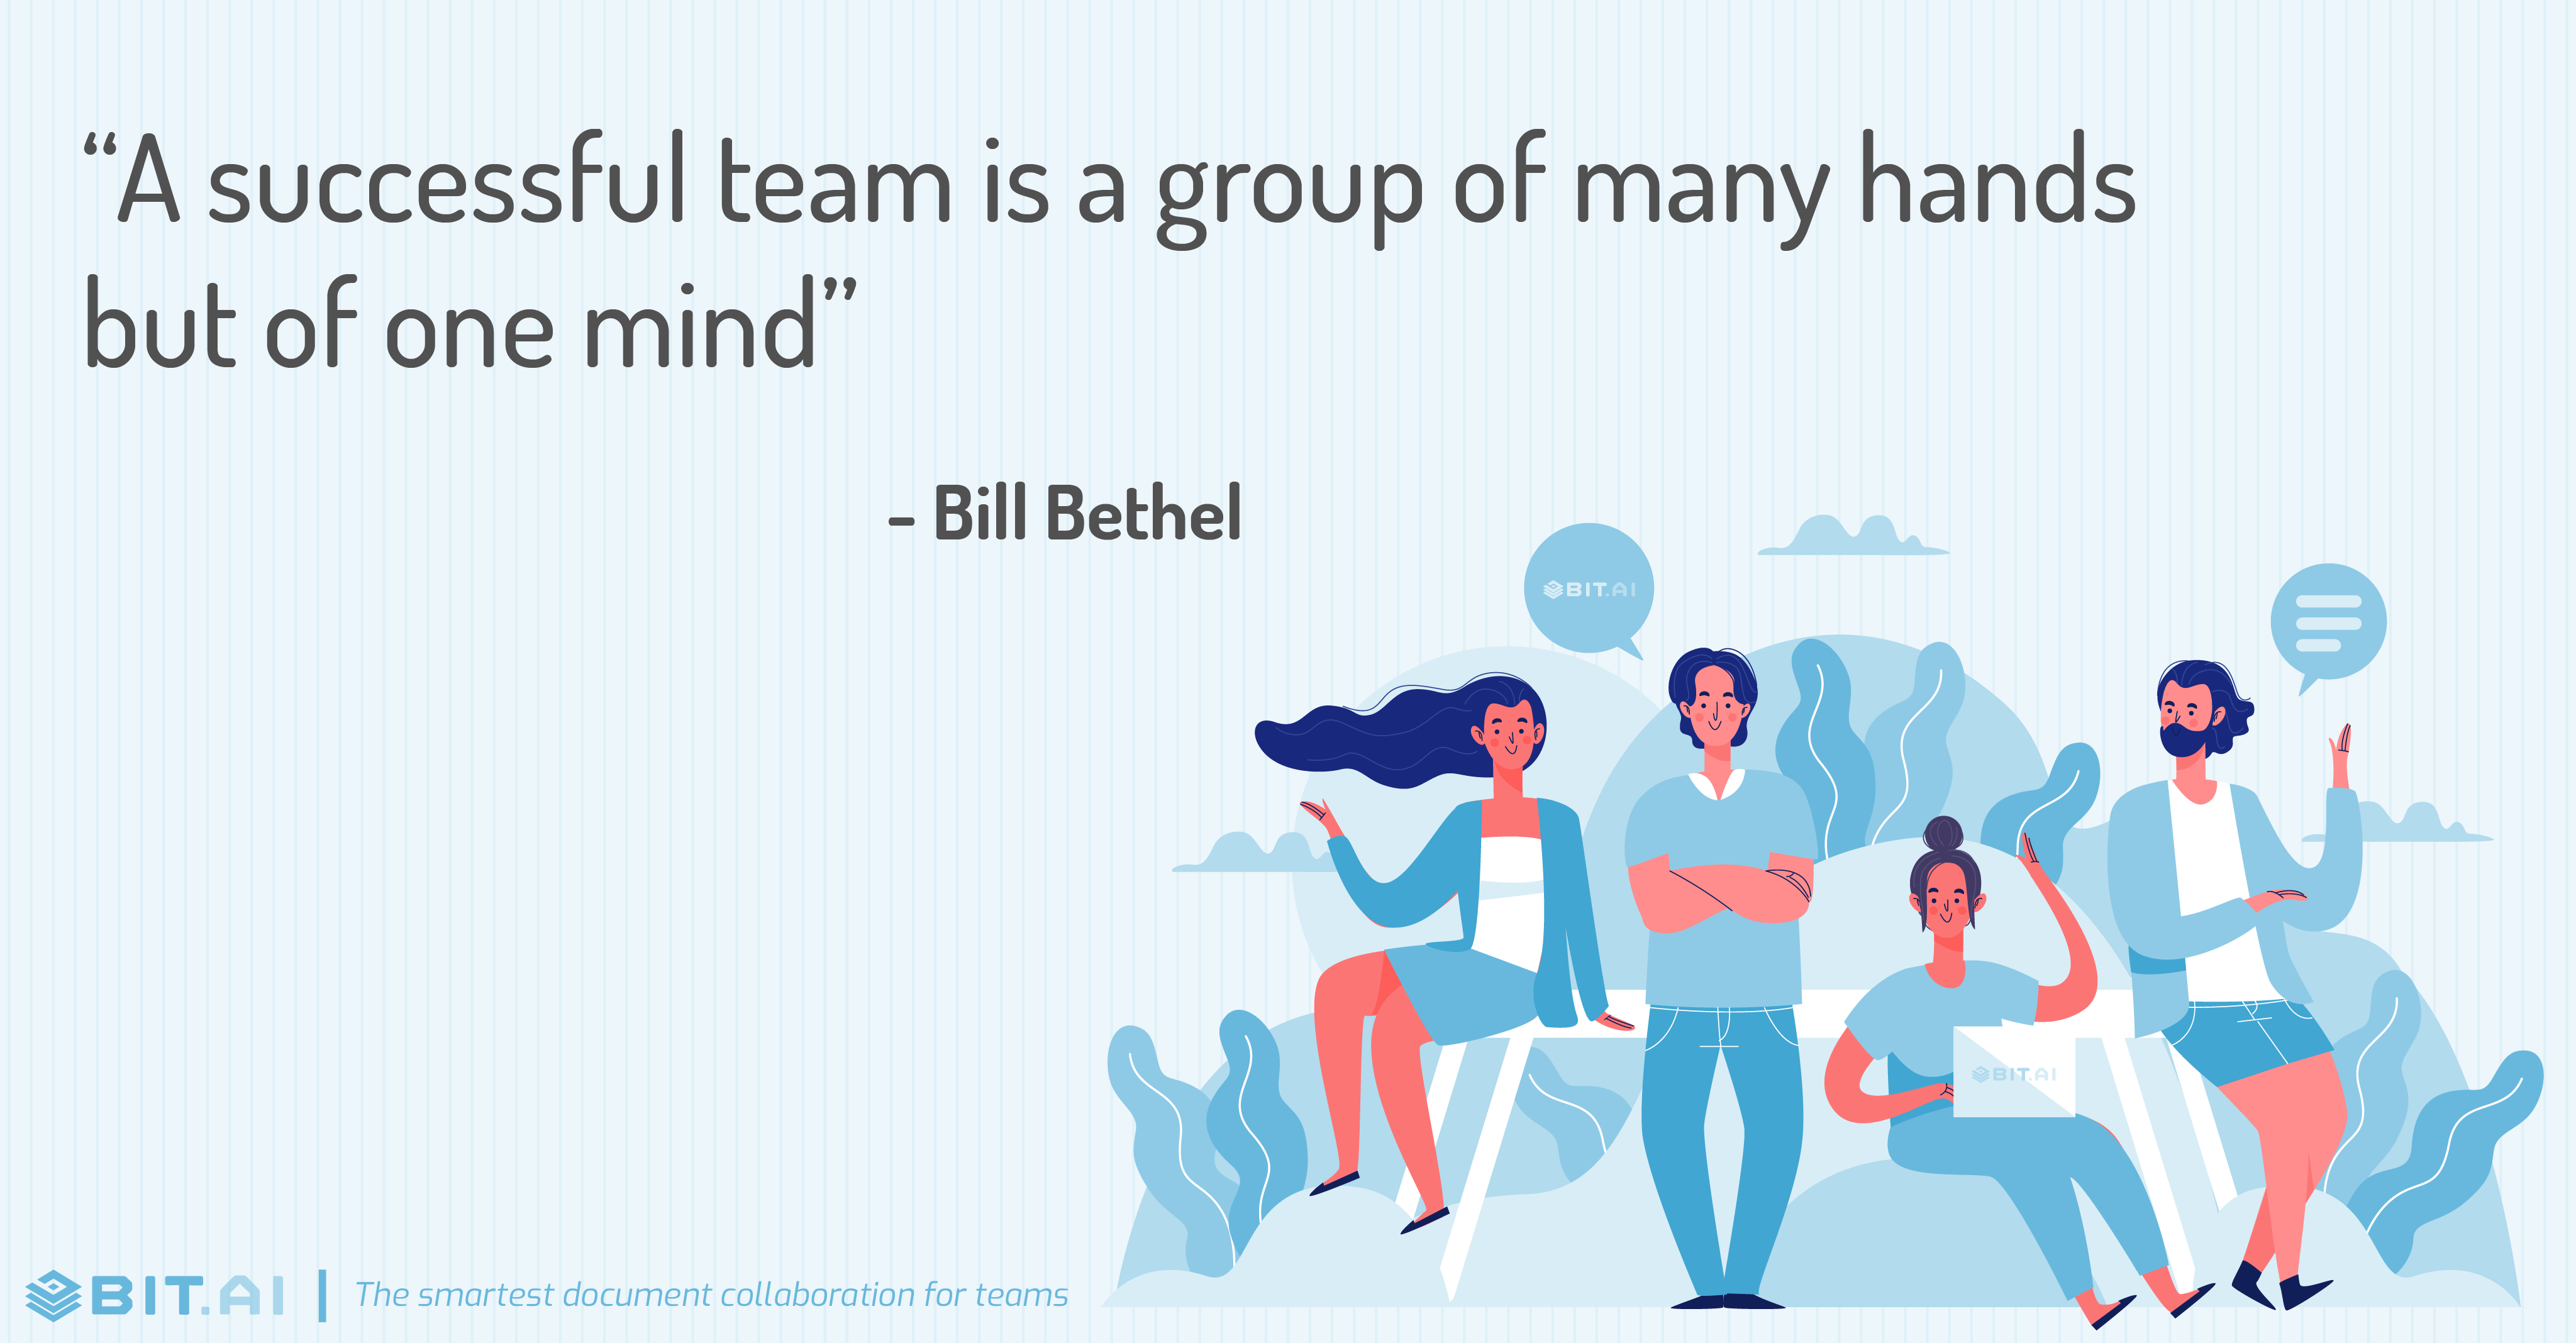 """A successful team is a group of many hands but of one mind"" - Bill Bethel"